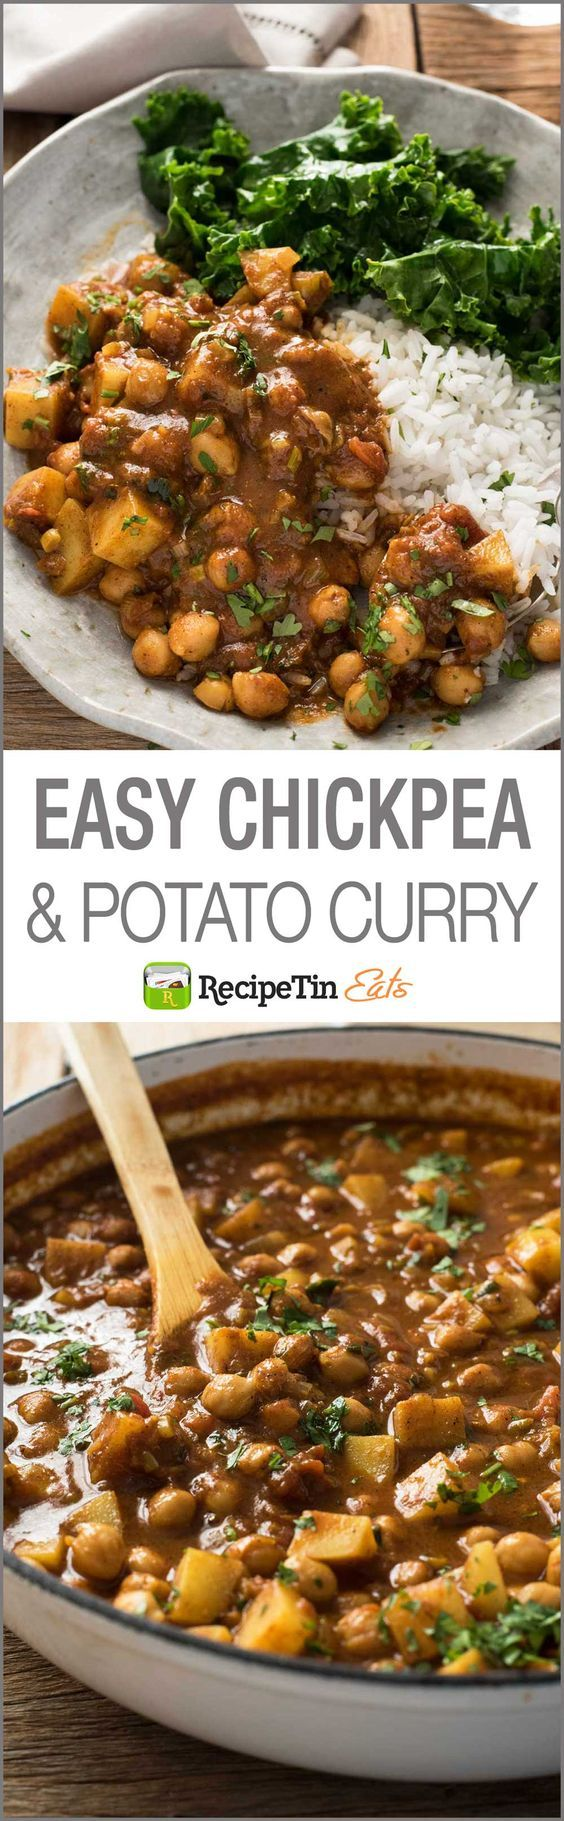 Chickpea Potato Curry - an authentic recipe that's so easy made from scratch no hunting down unusual ingredients. Incredible flavour!